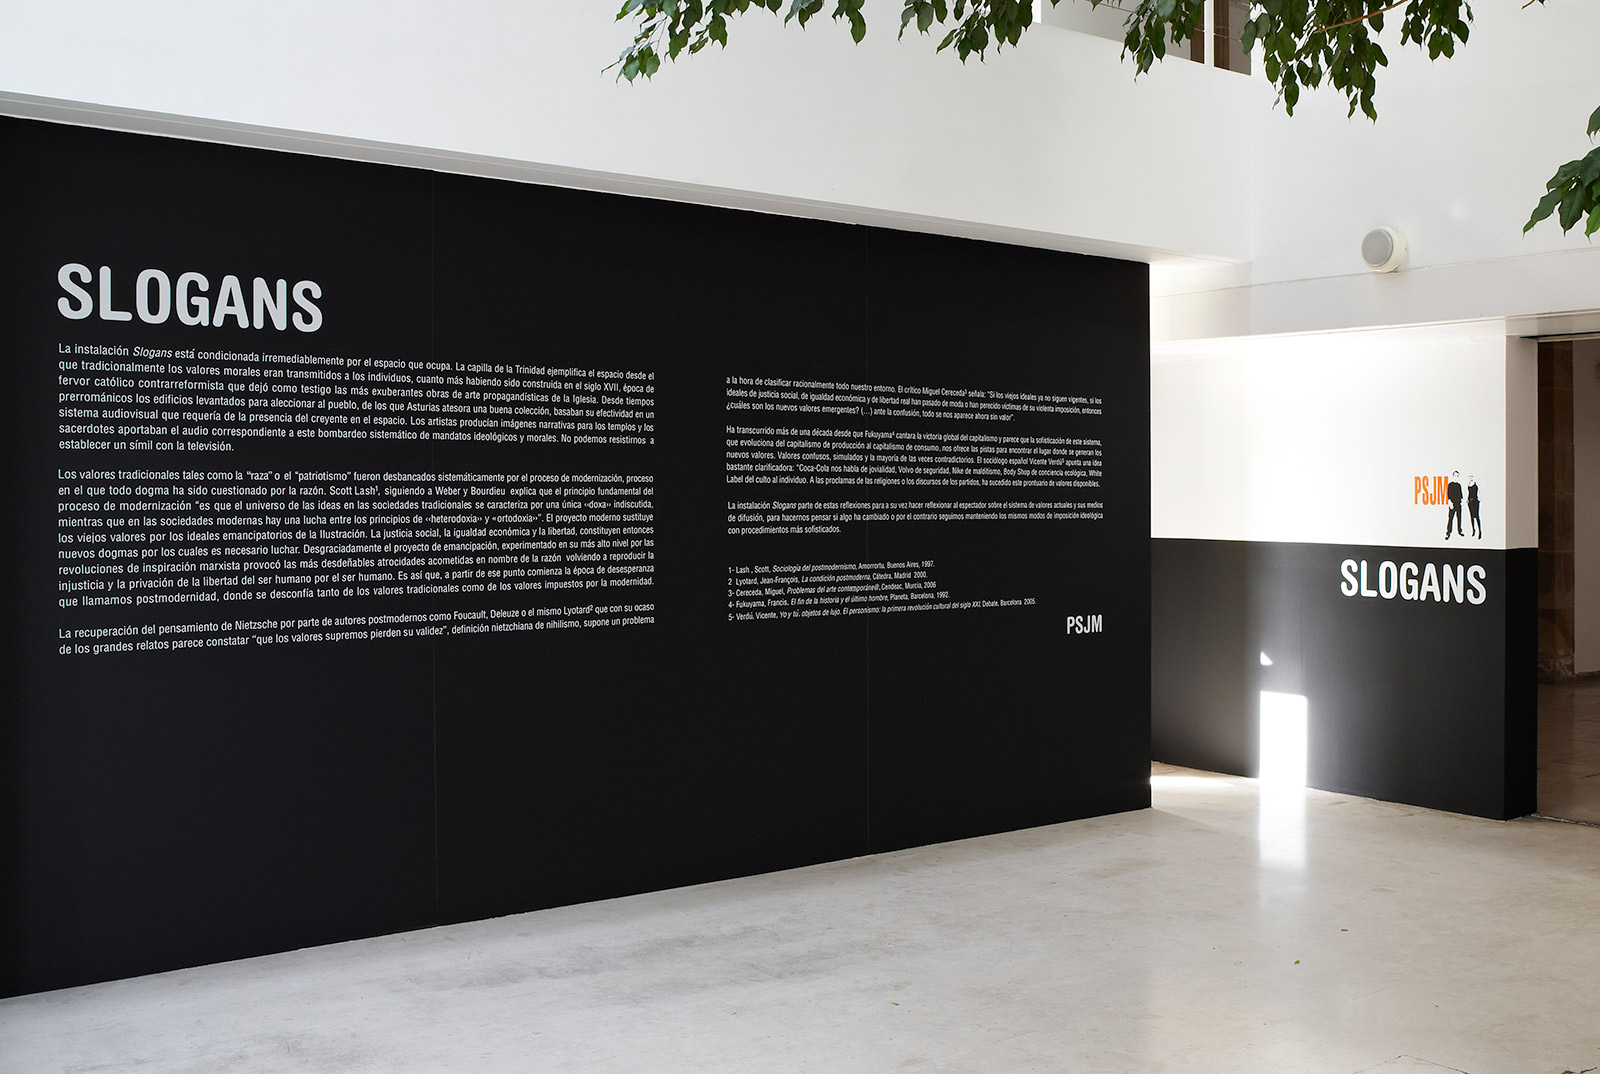 «Slogans (mural text)», 2009, View of the installation at Barjola Museum, Gijón.